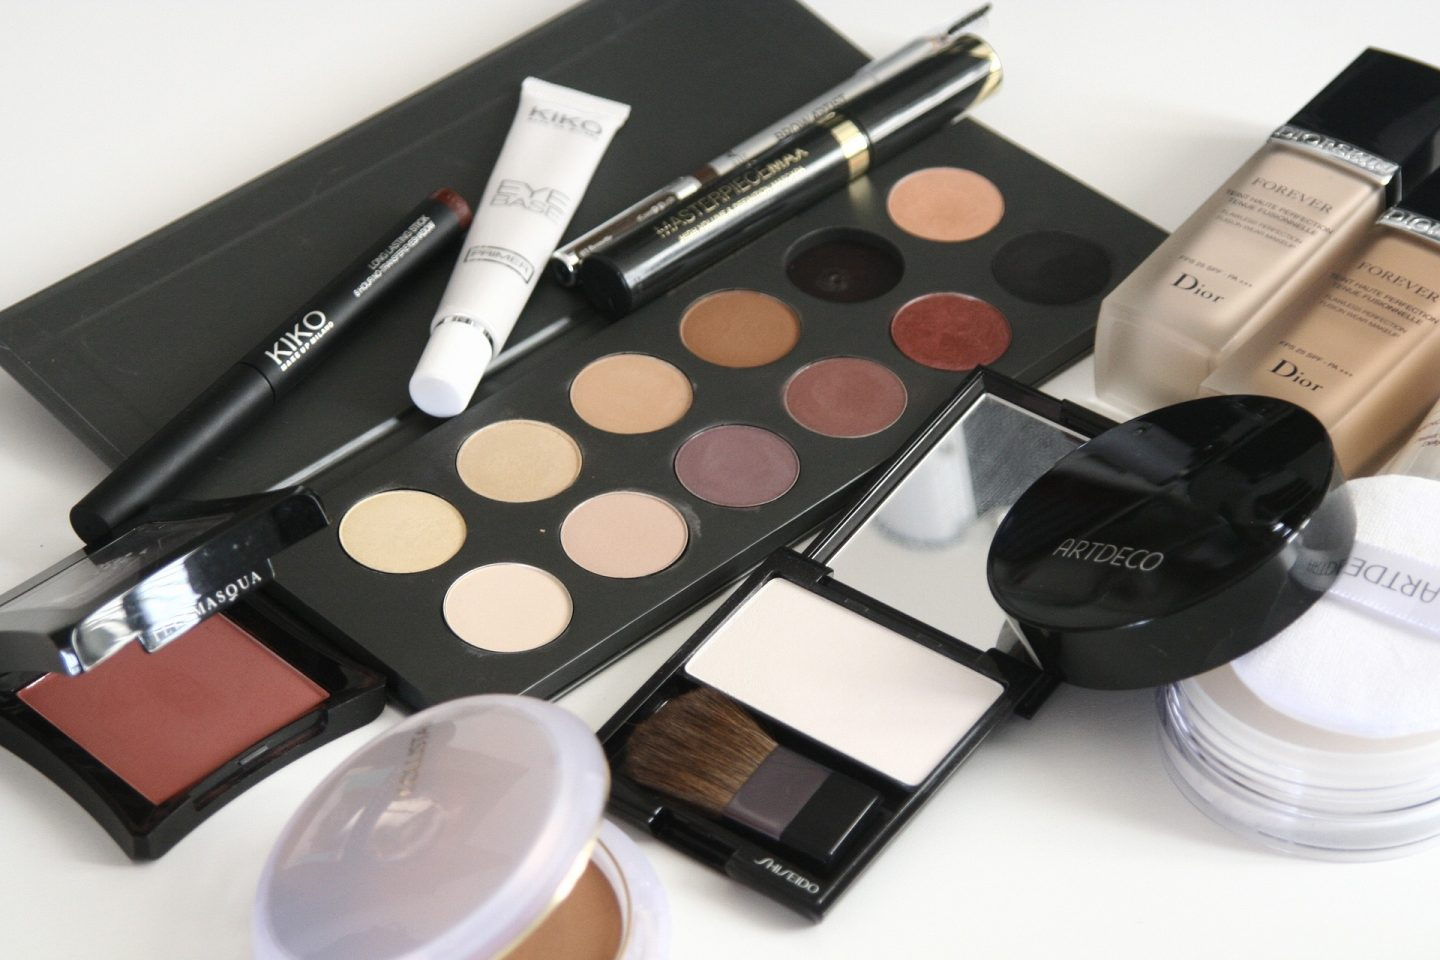 How to Check the Expiration Date of Your Makeup